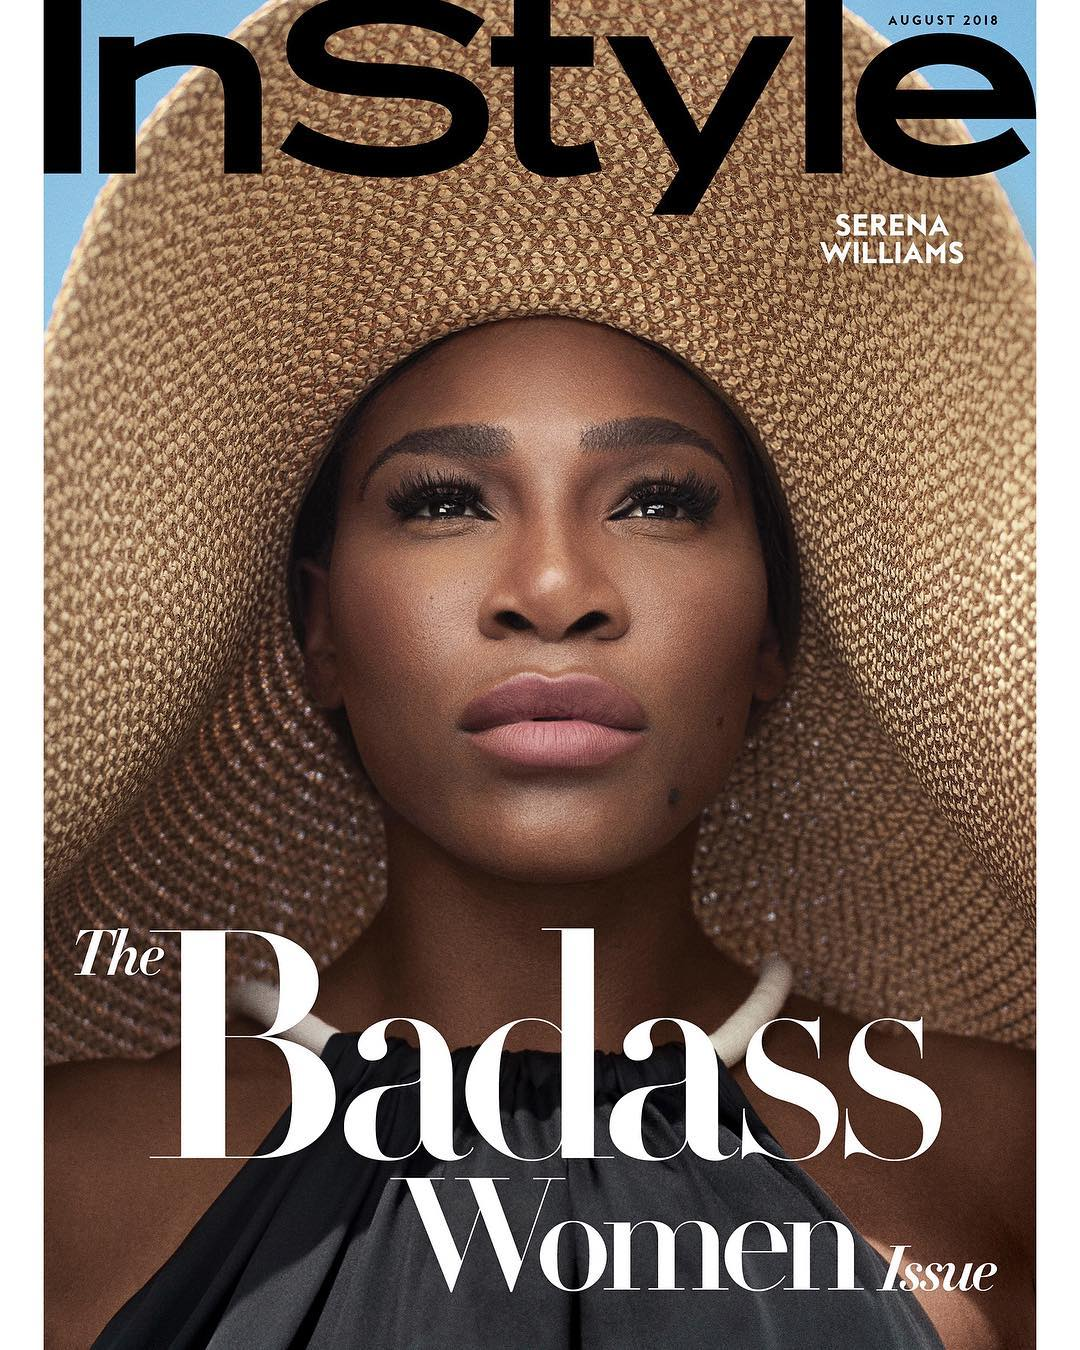 Serena Williams Covers First Badass Women Issue InStyle Magazine